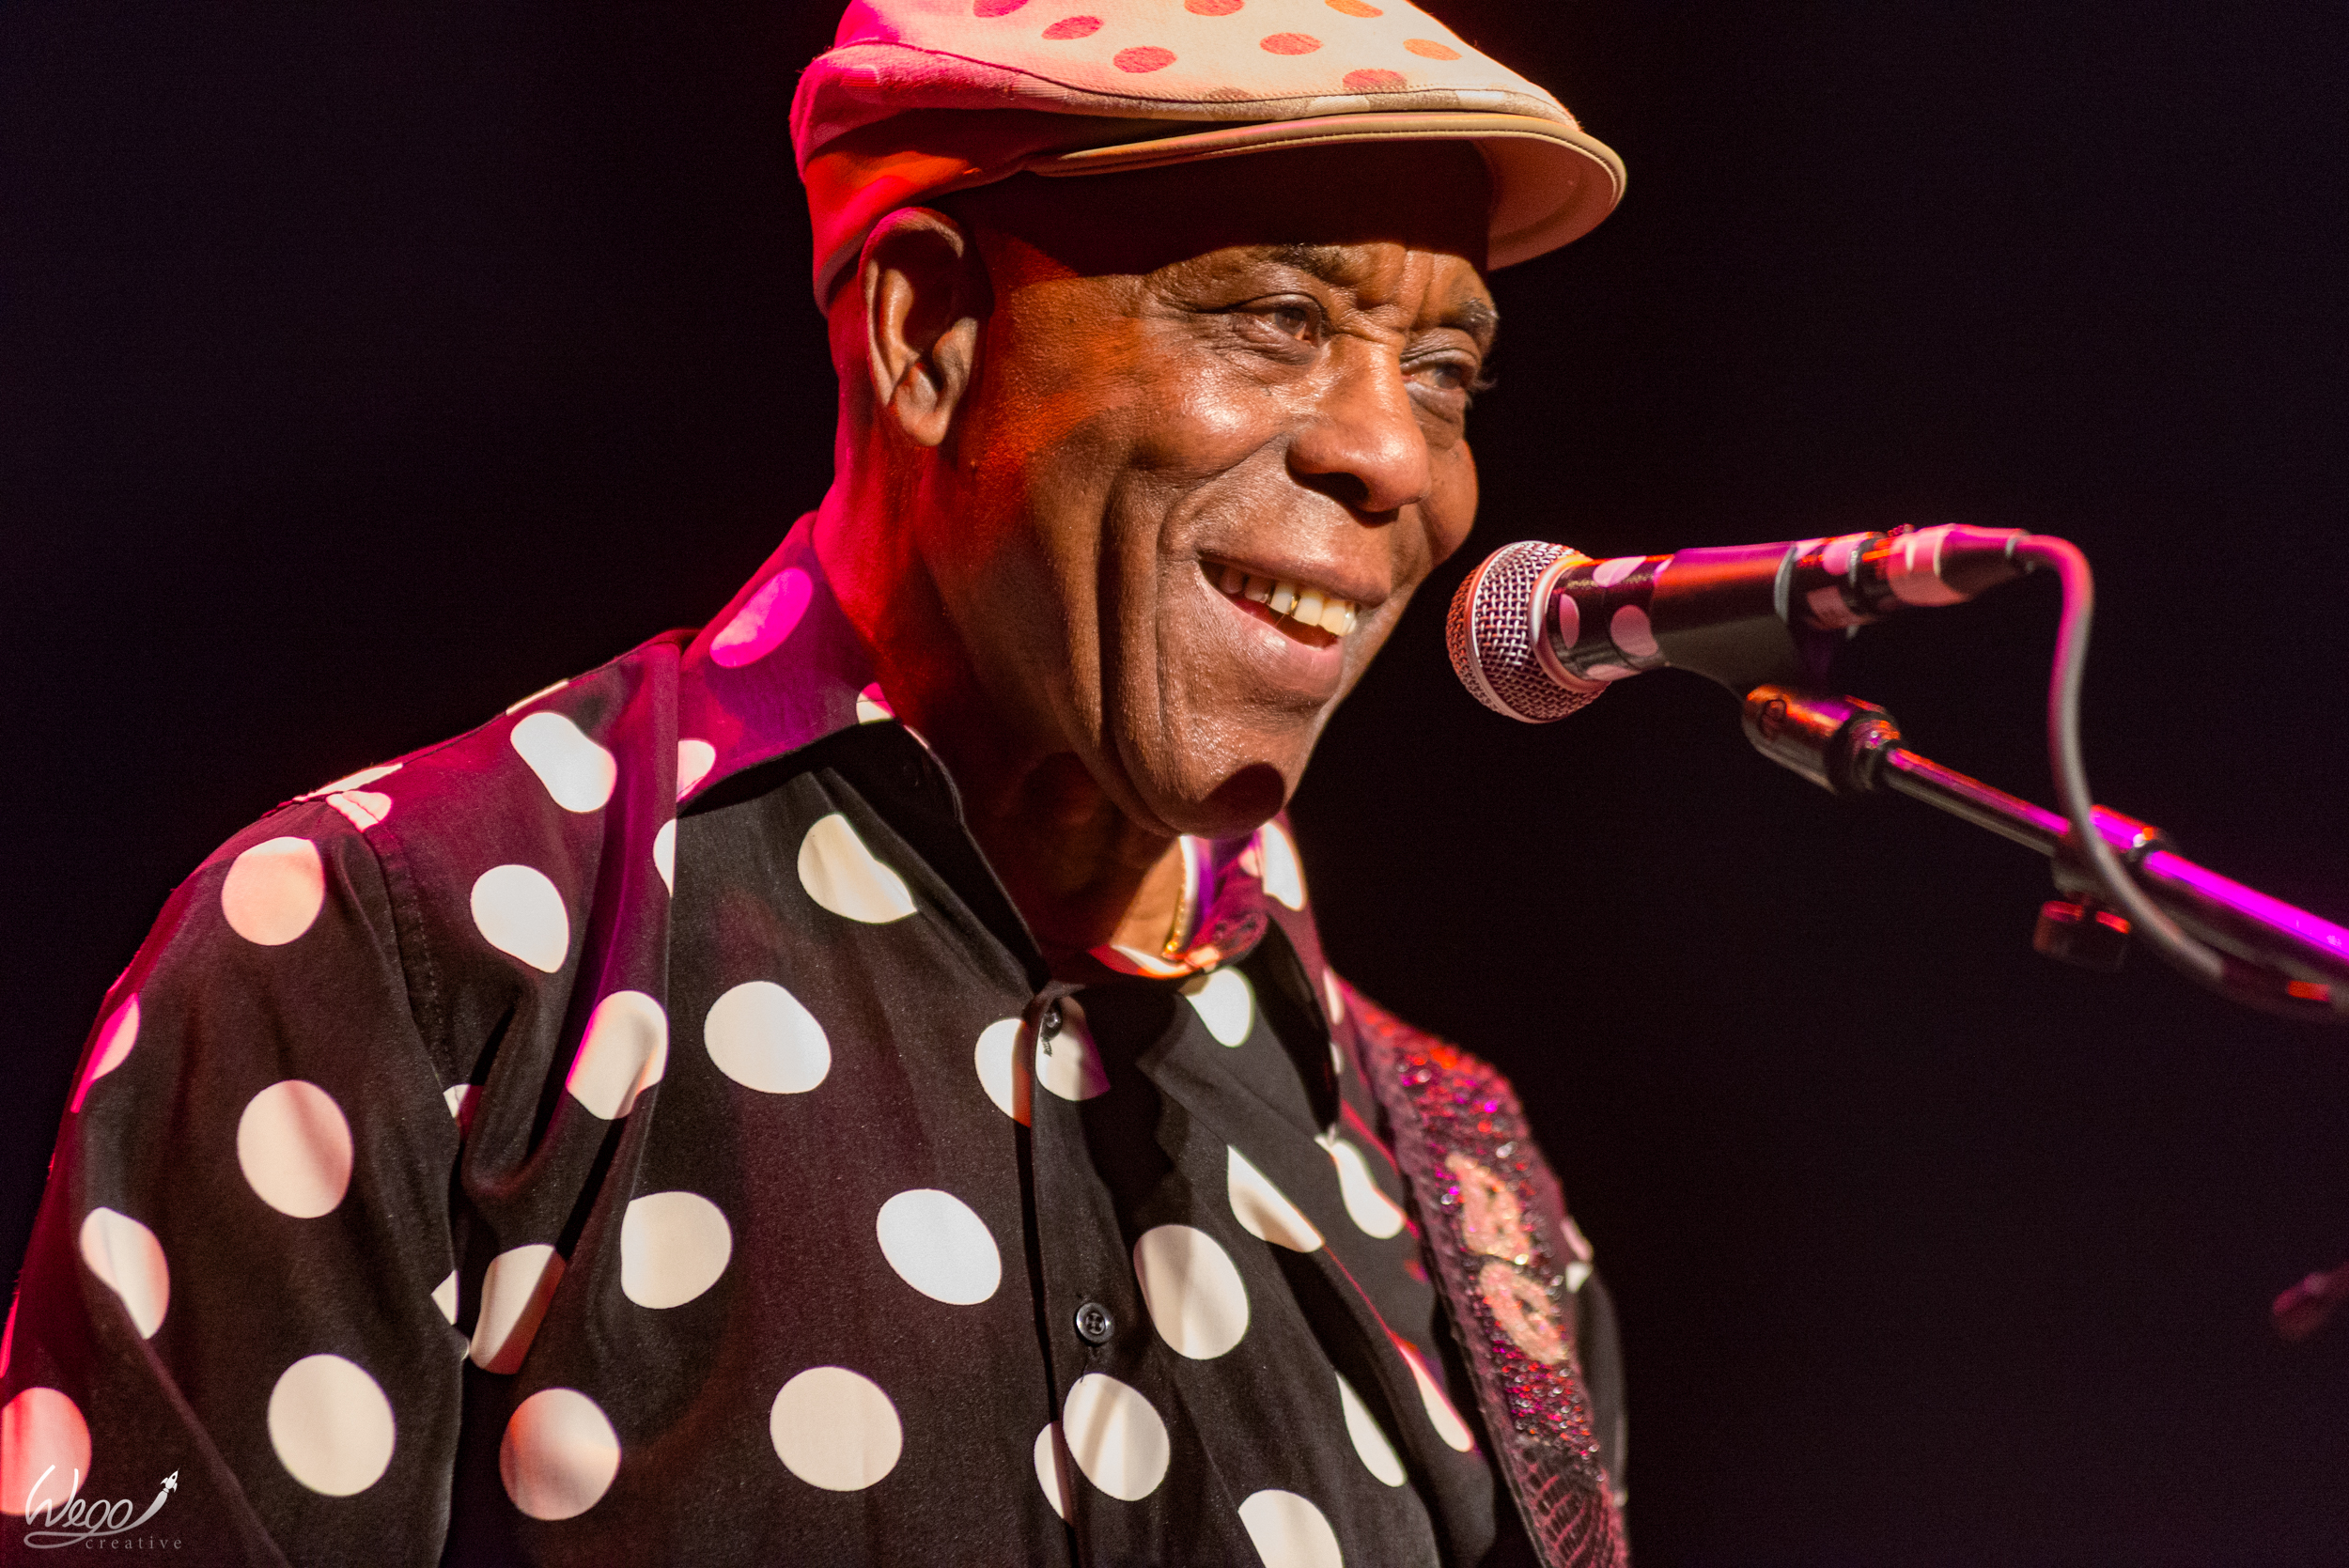 Buddy Guy Live at the Gillioz Theatre